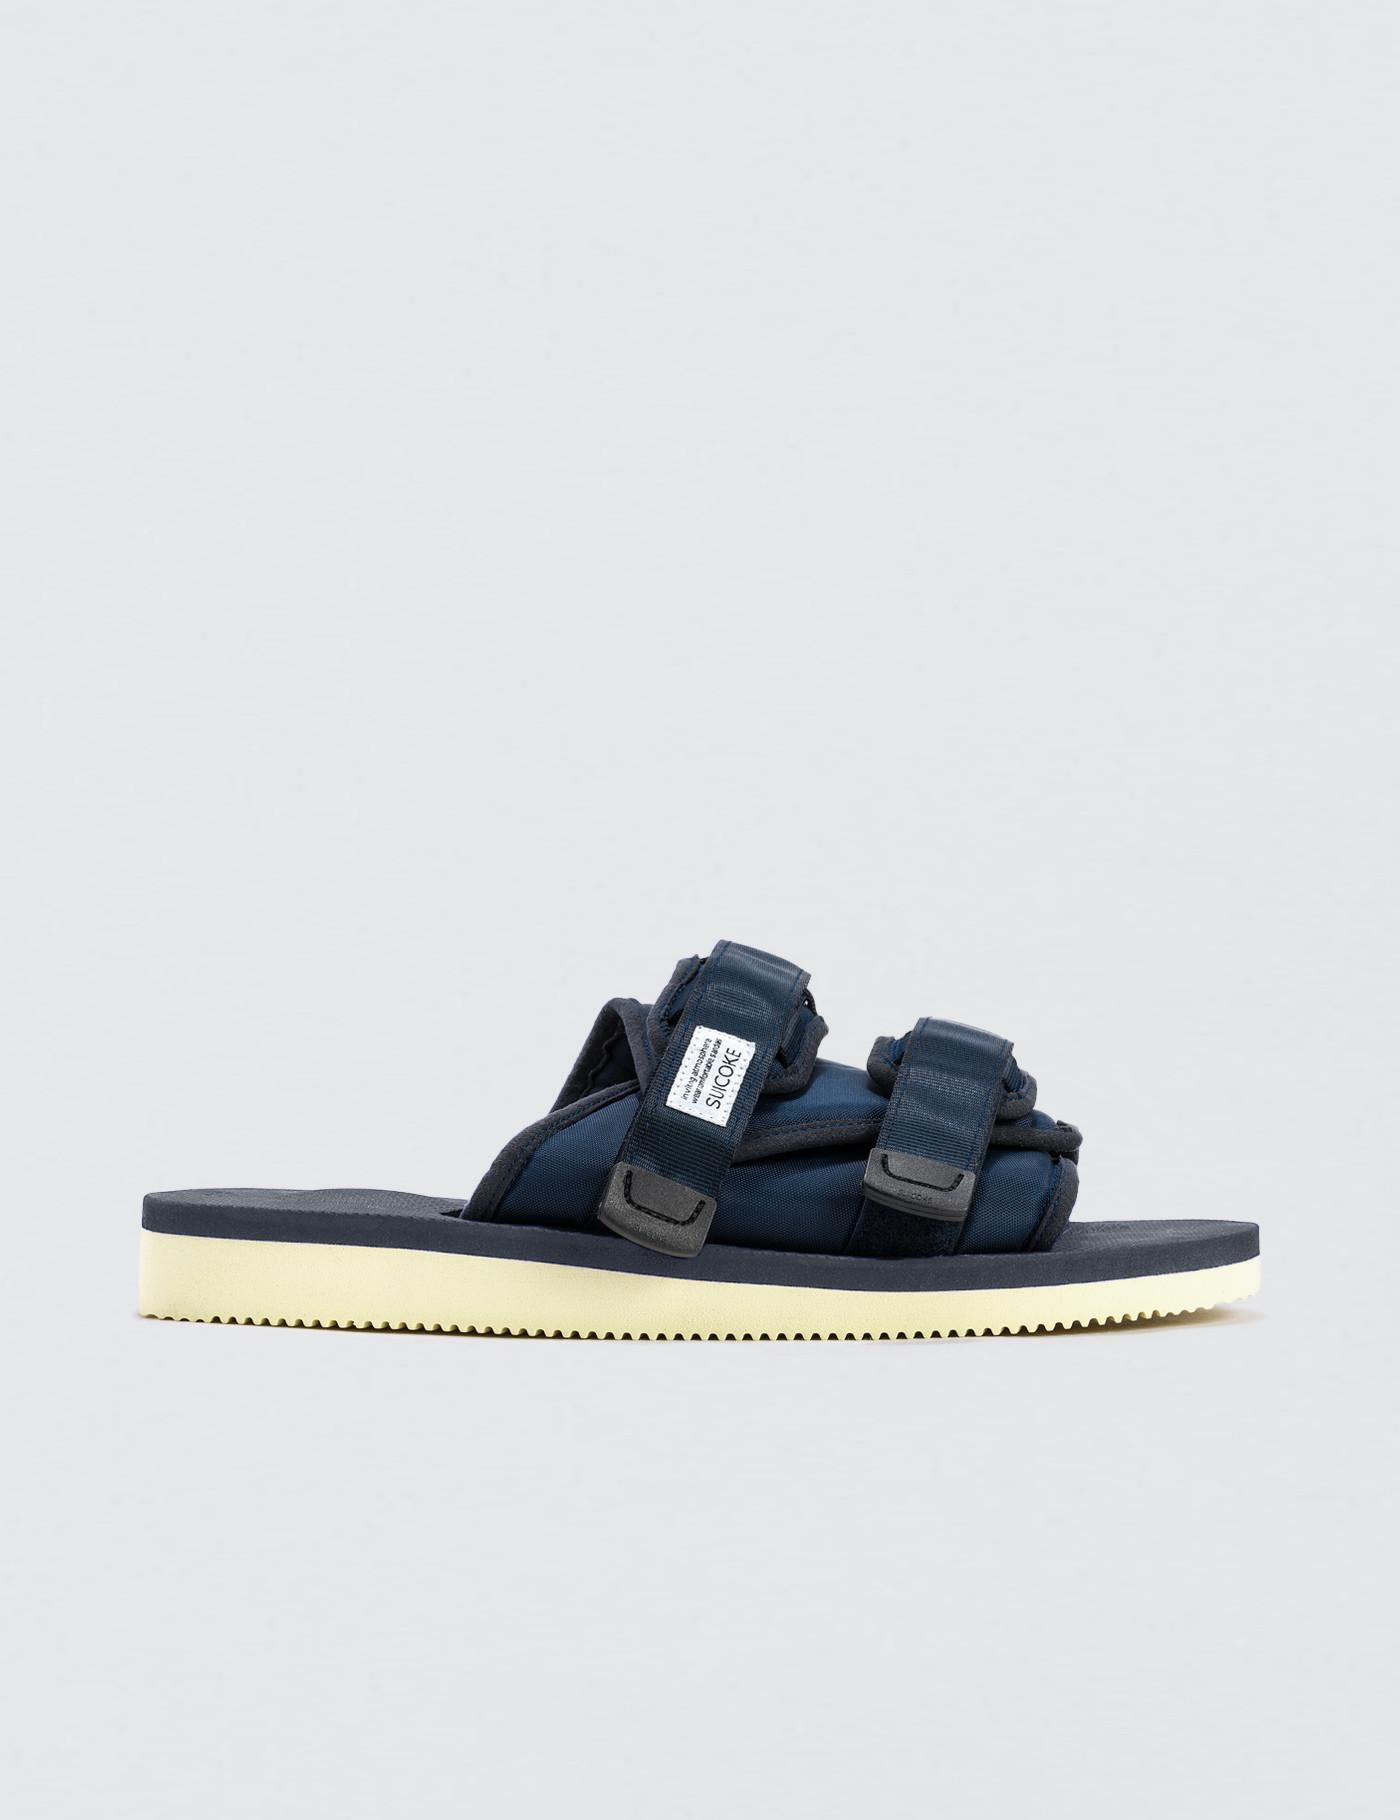 85aa063f68a Lyst - Suicoke Moto-cab Sandals in Blue - Save 8%